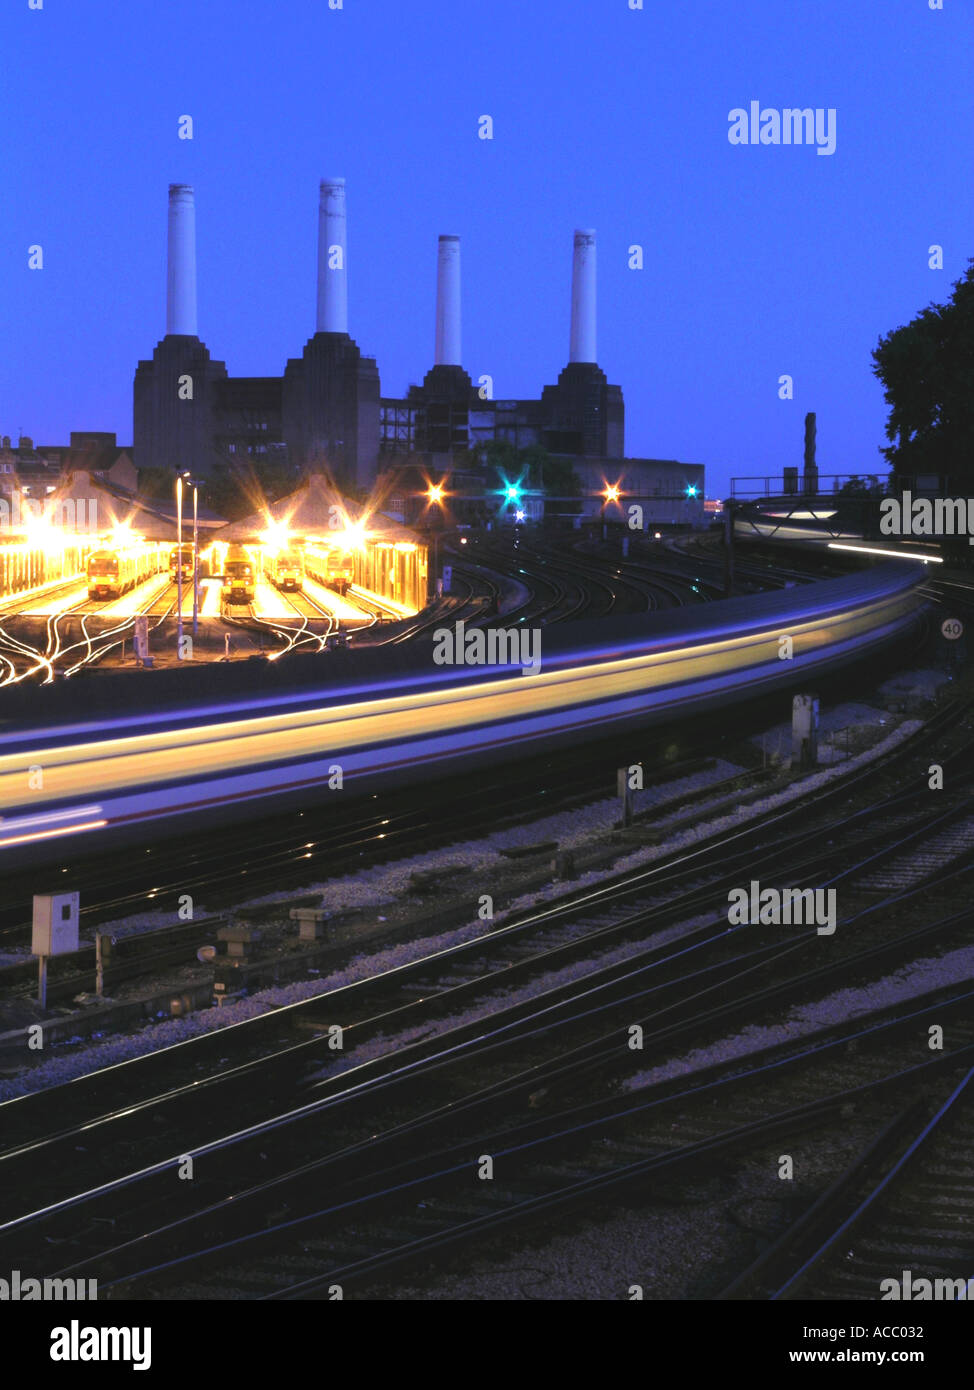 Train from Victoria Station passing the now disused Battersea Power Station in London England UK dusk night - Stock Image